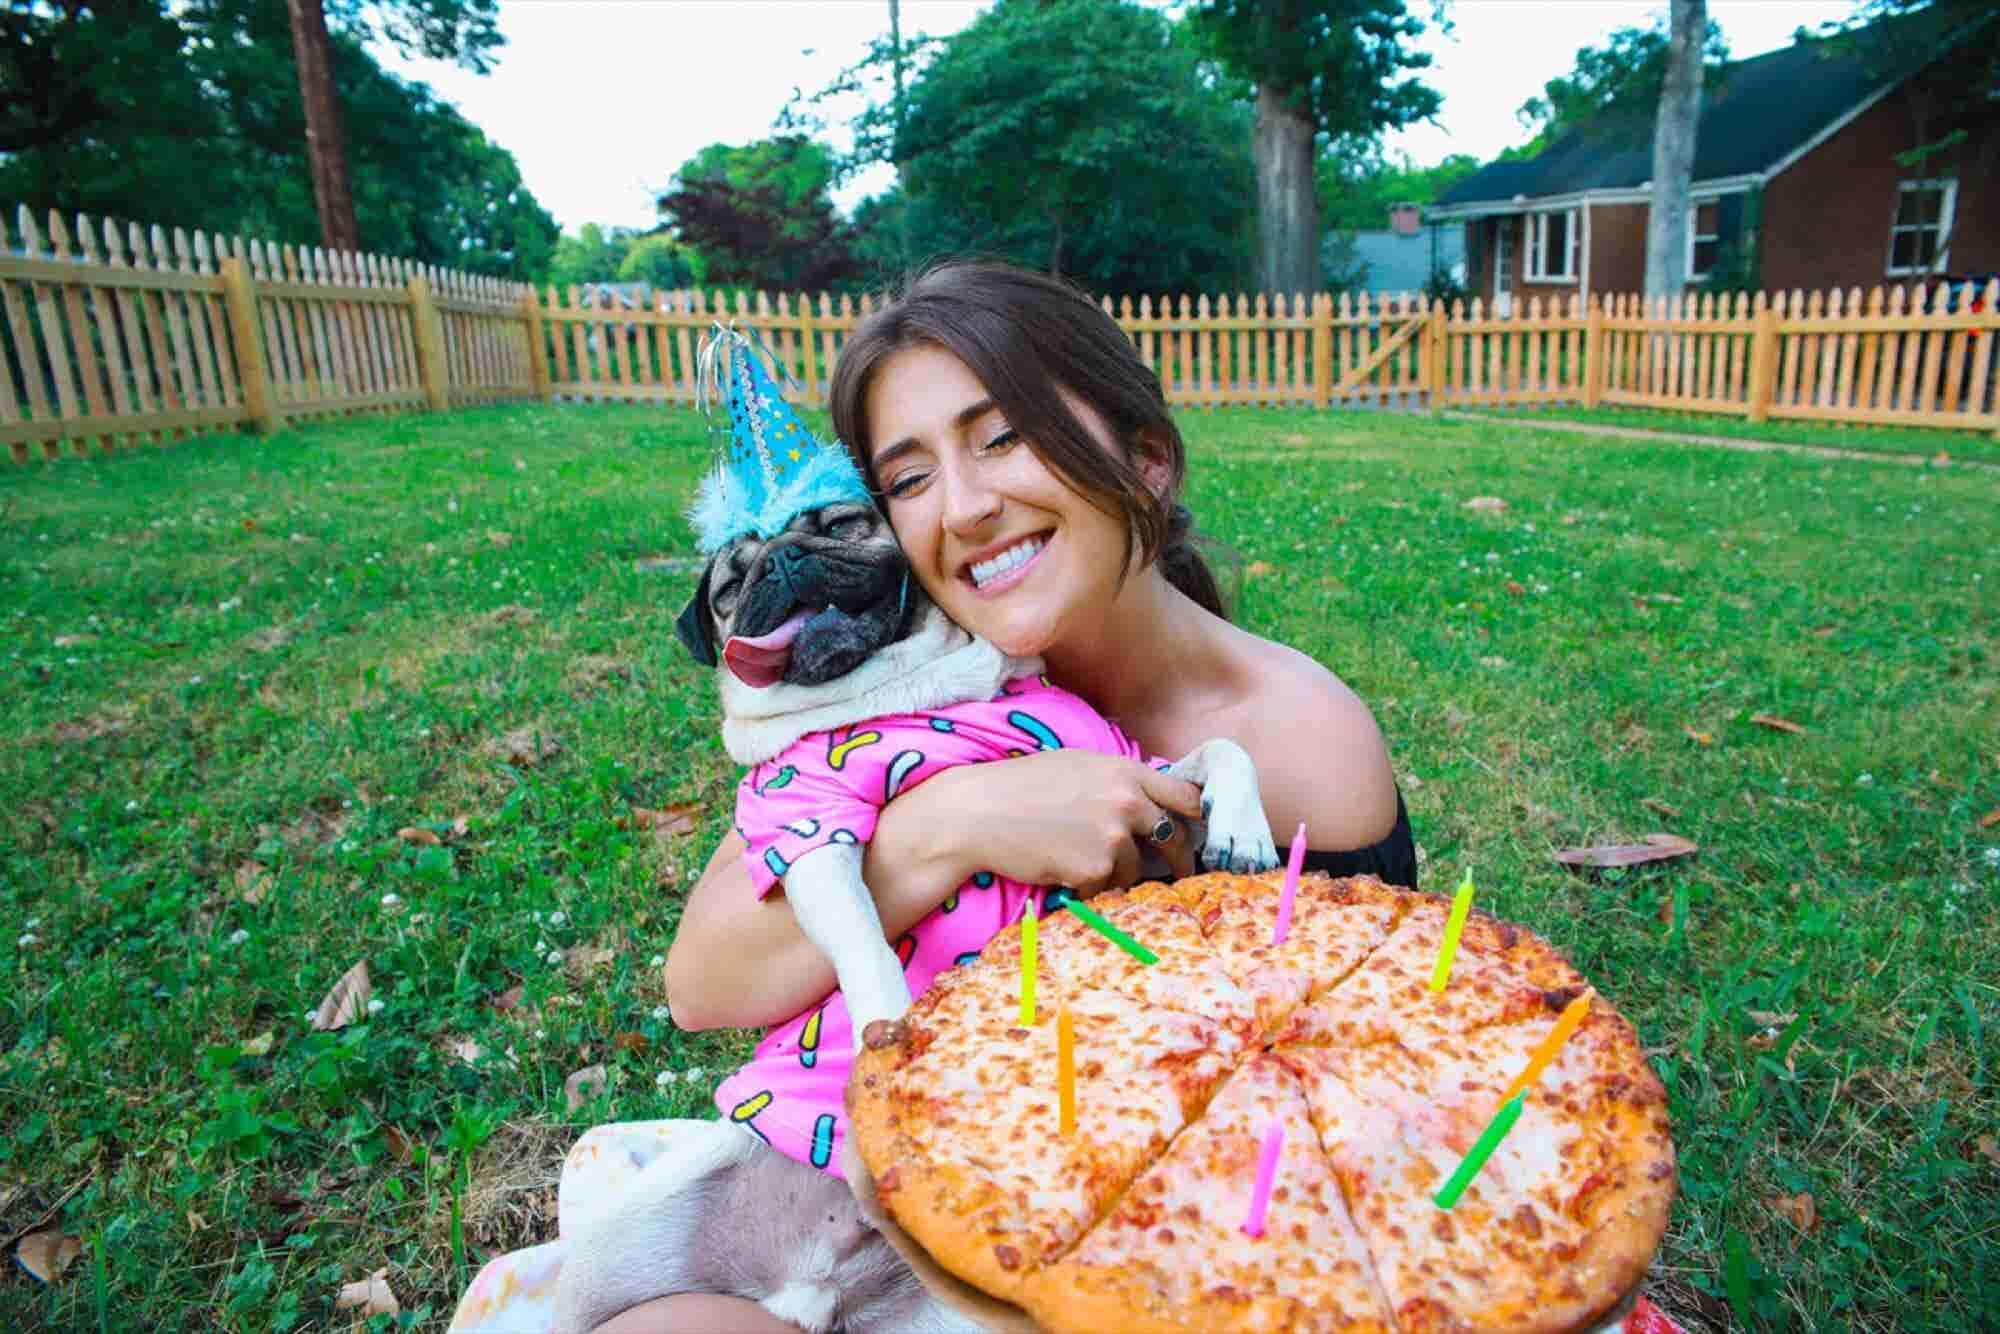 The Secrets of the Woman Who Quit Her Job and Made Her Pug an Instagram Celebrity